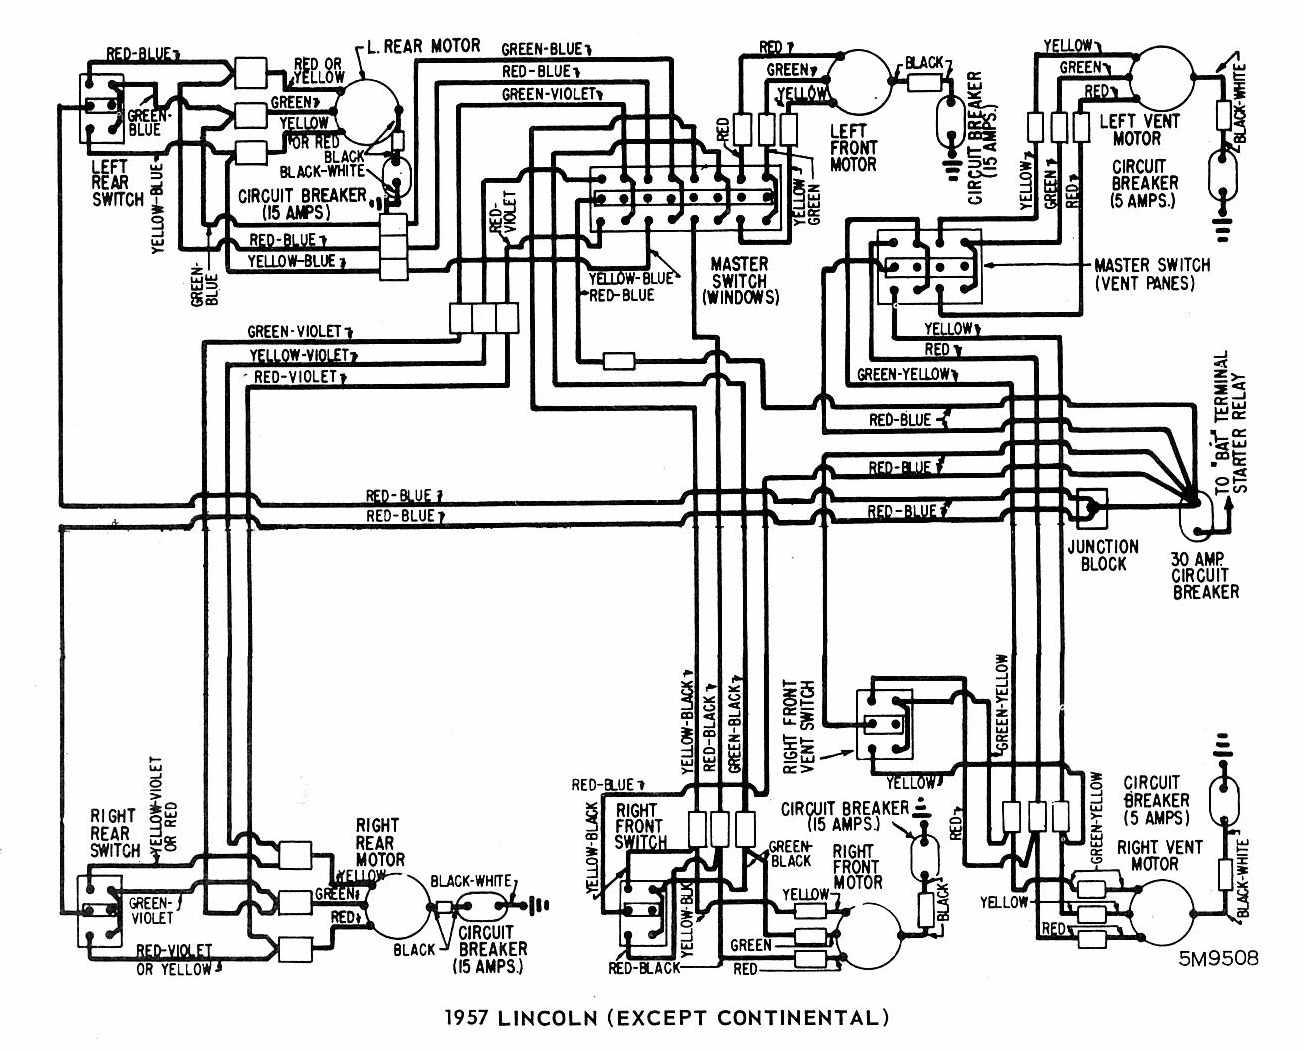 1988 Lincoln Town Car Fuse Diagram, 1988, Free Engine